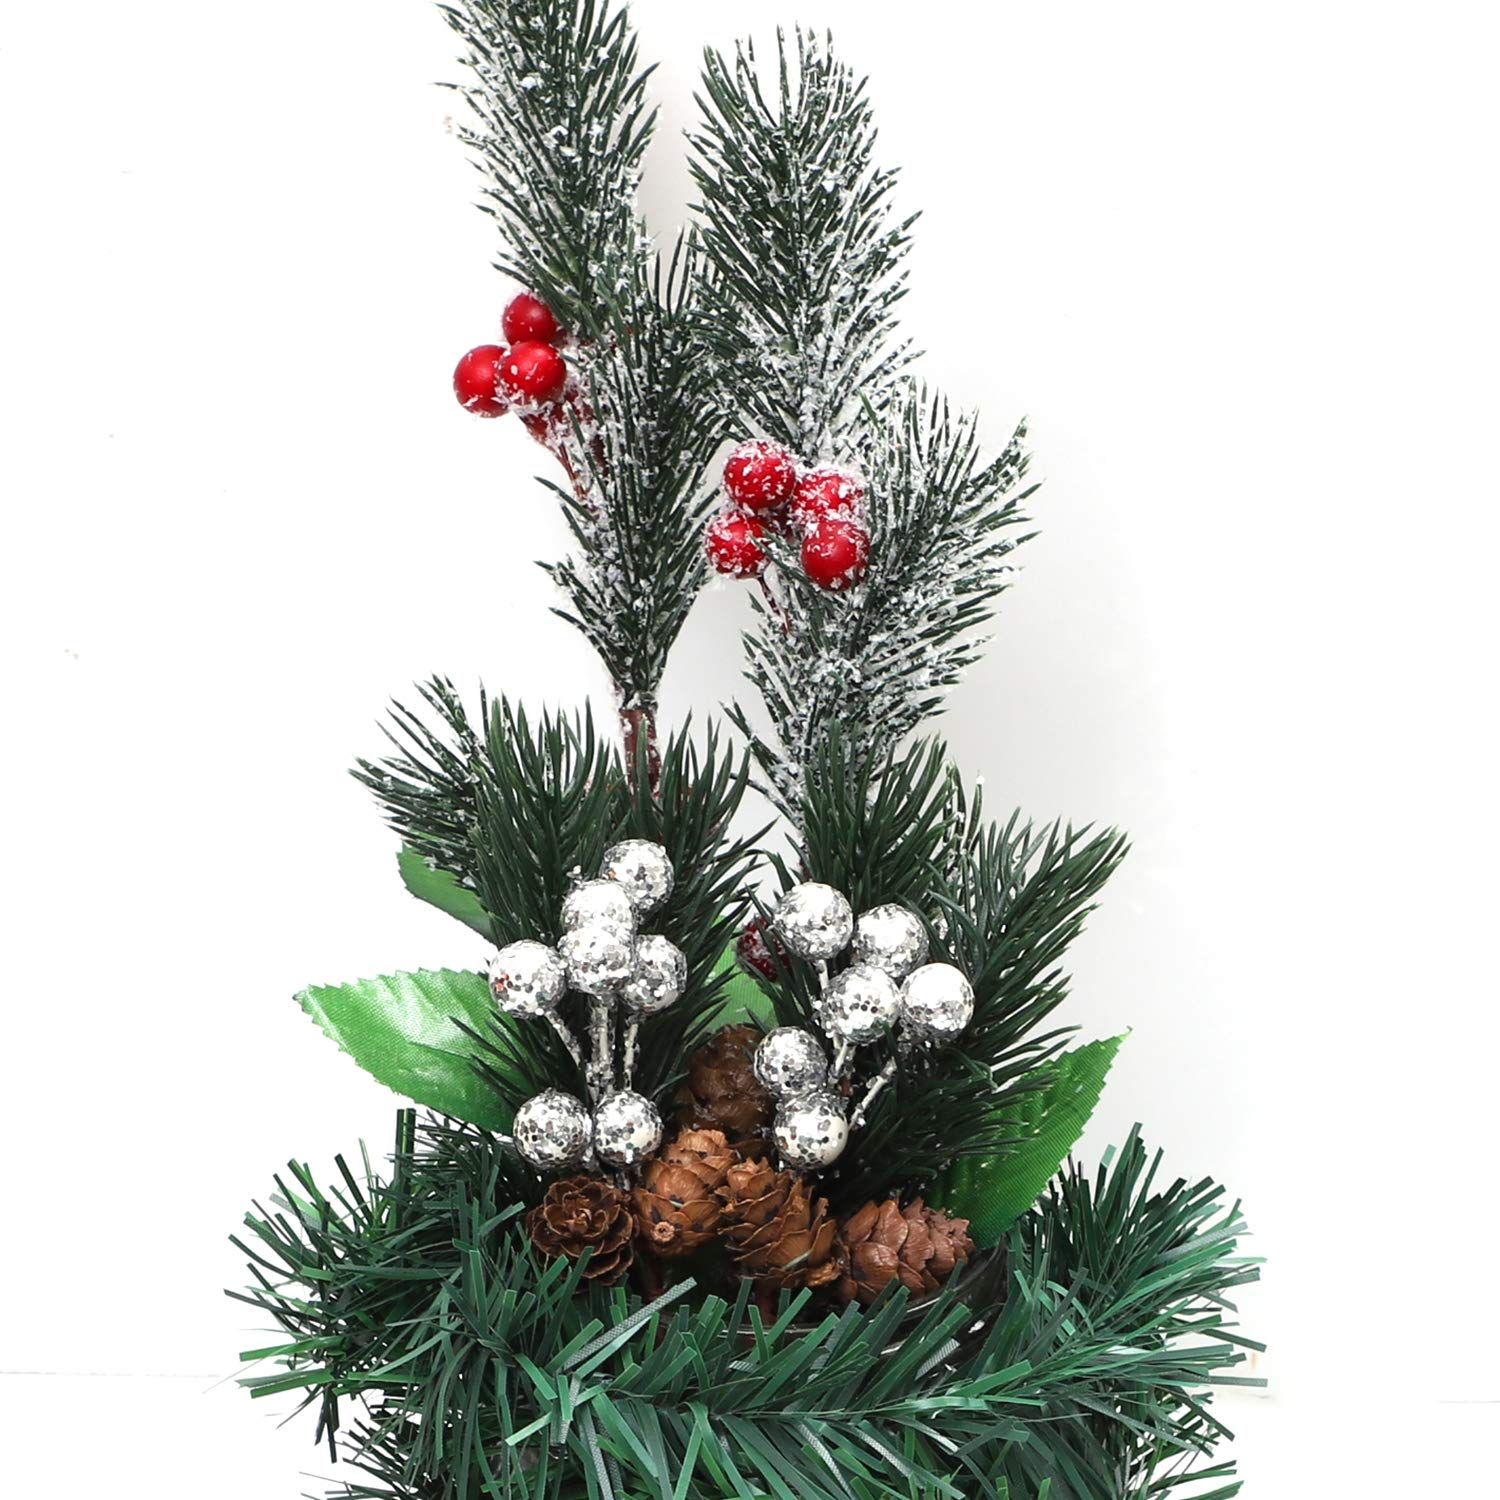 Cooraby 12 Pieces White Christmas Berry Stems Pine Artificial Pine Cones Branch White Holly Spray for Winter Decoration Christmas Crafts Party DIY Crafts